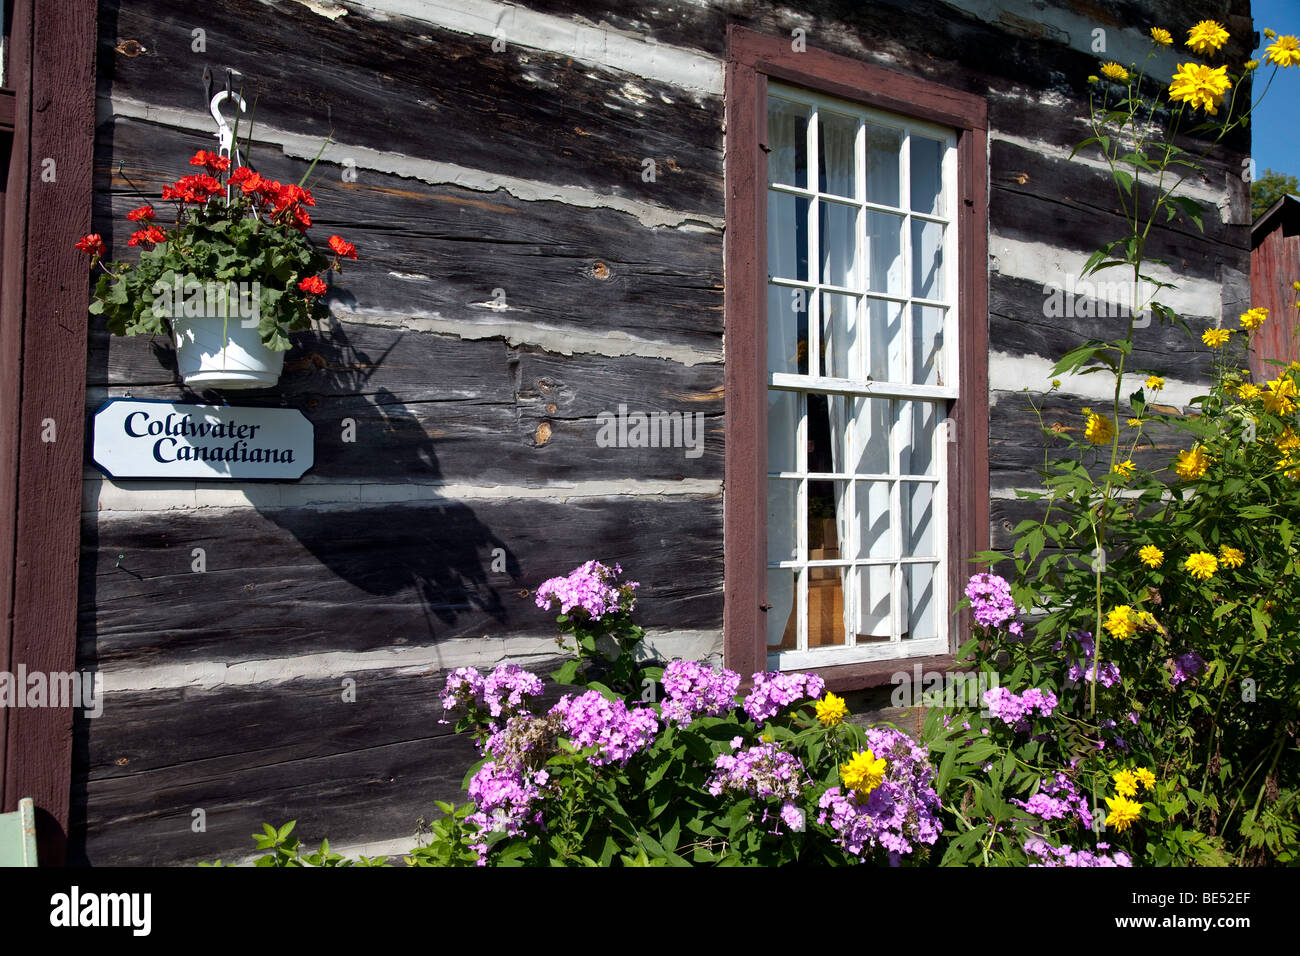 b9fcbc530579 Tradition Canadian Log Home for the 19th Century  window flowers exterior